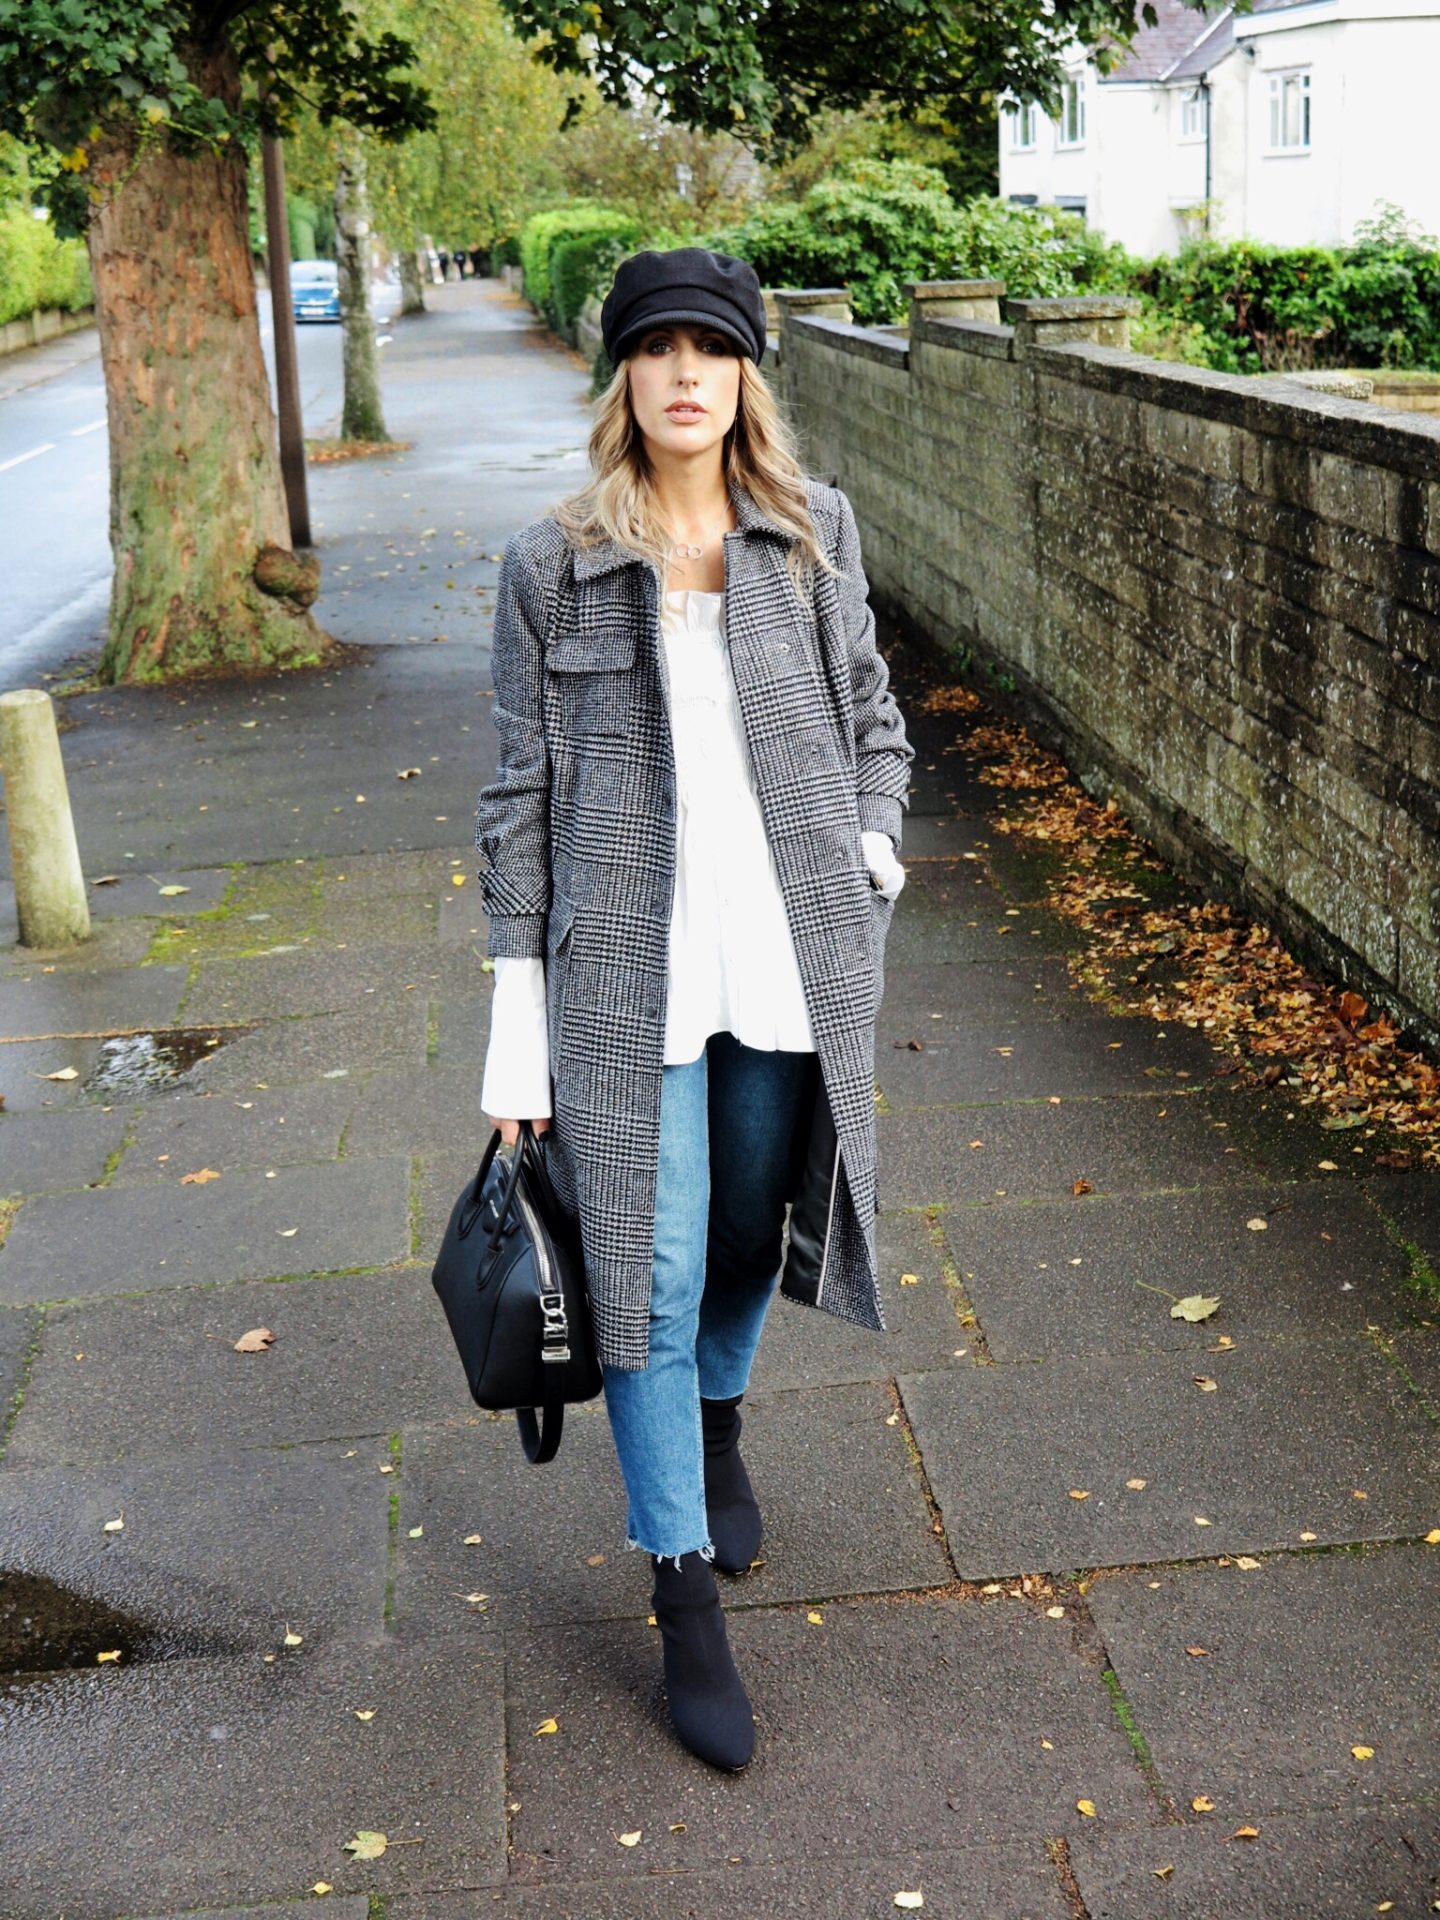 Charlotte Buttrick UK Personal Style Blogger